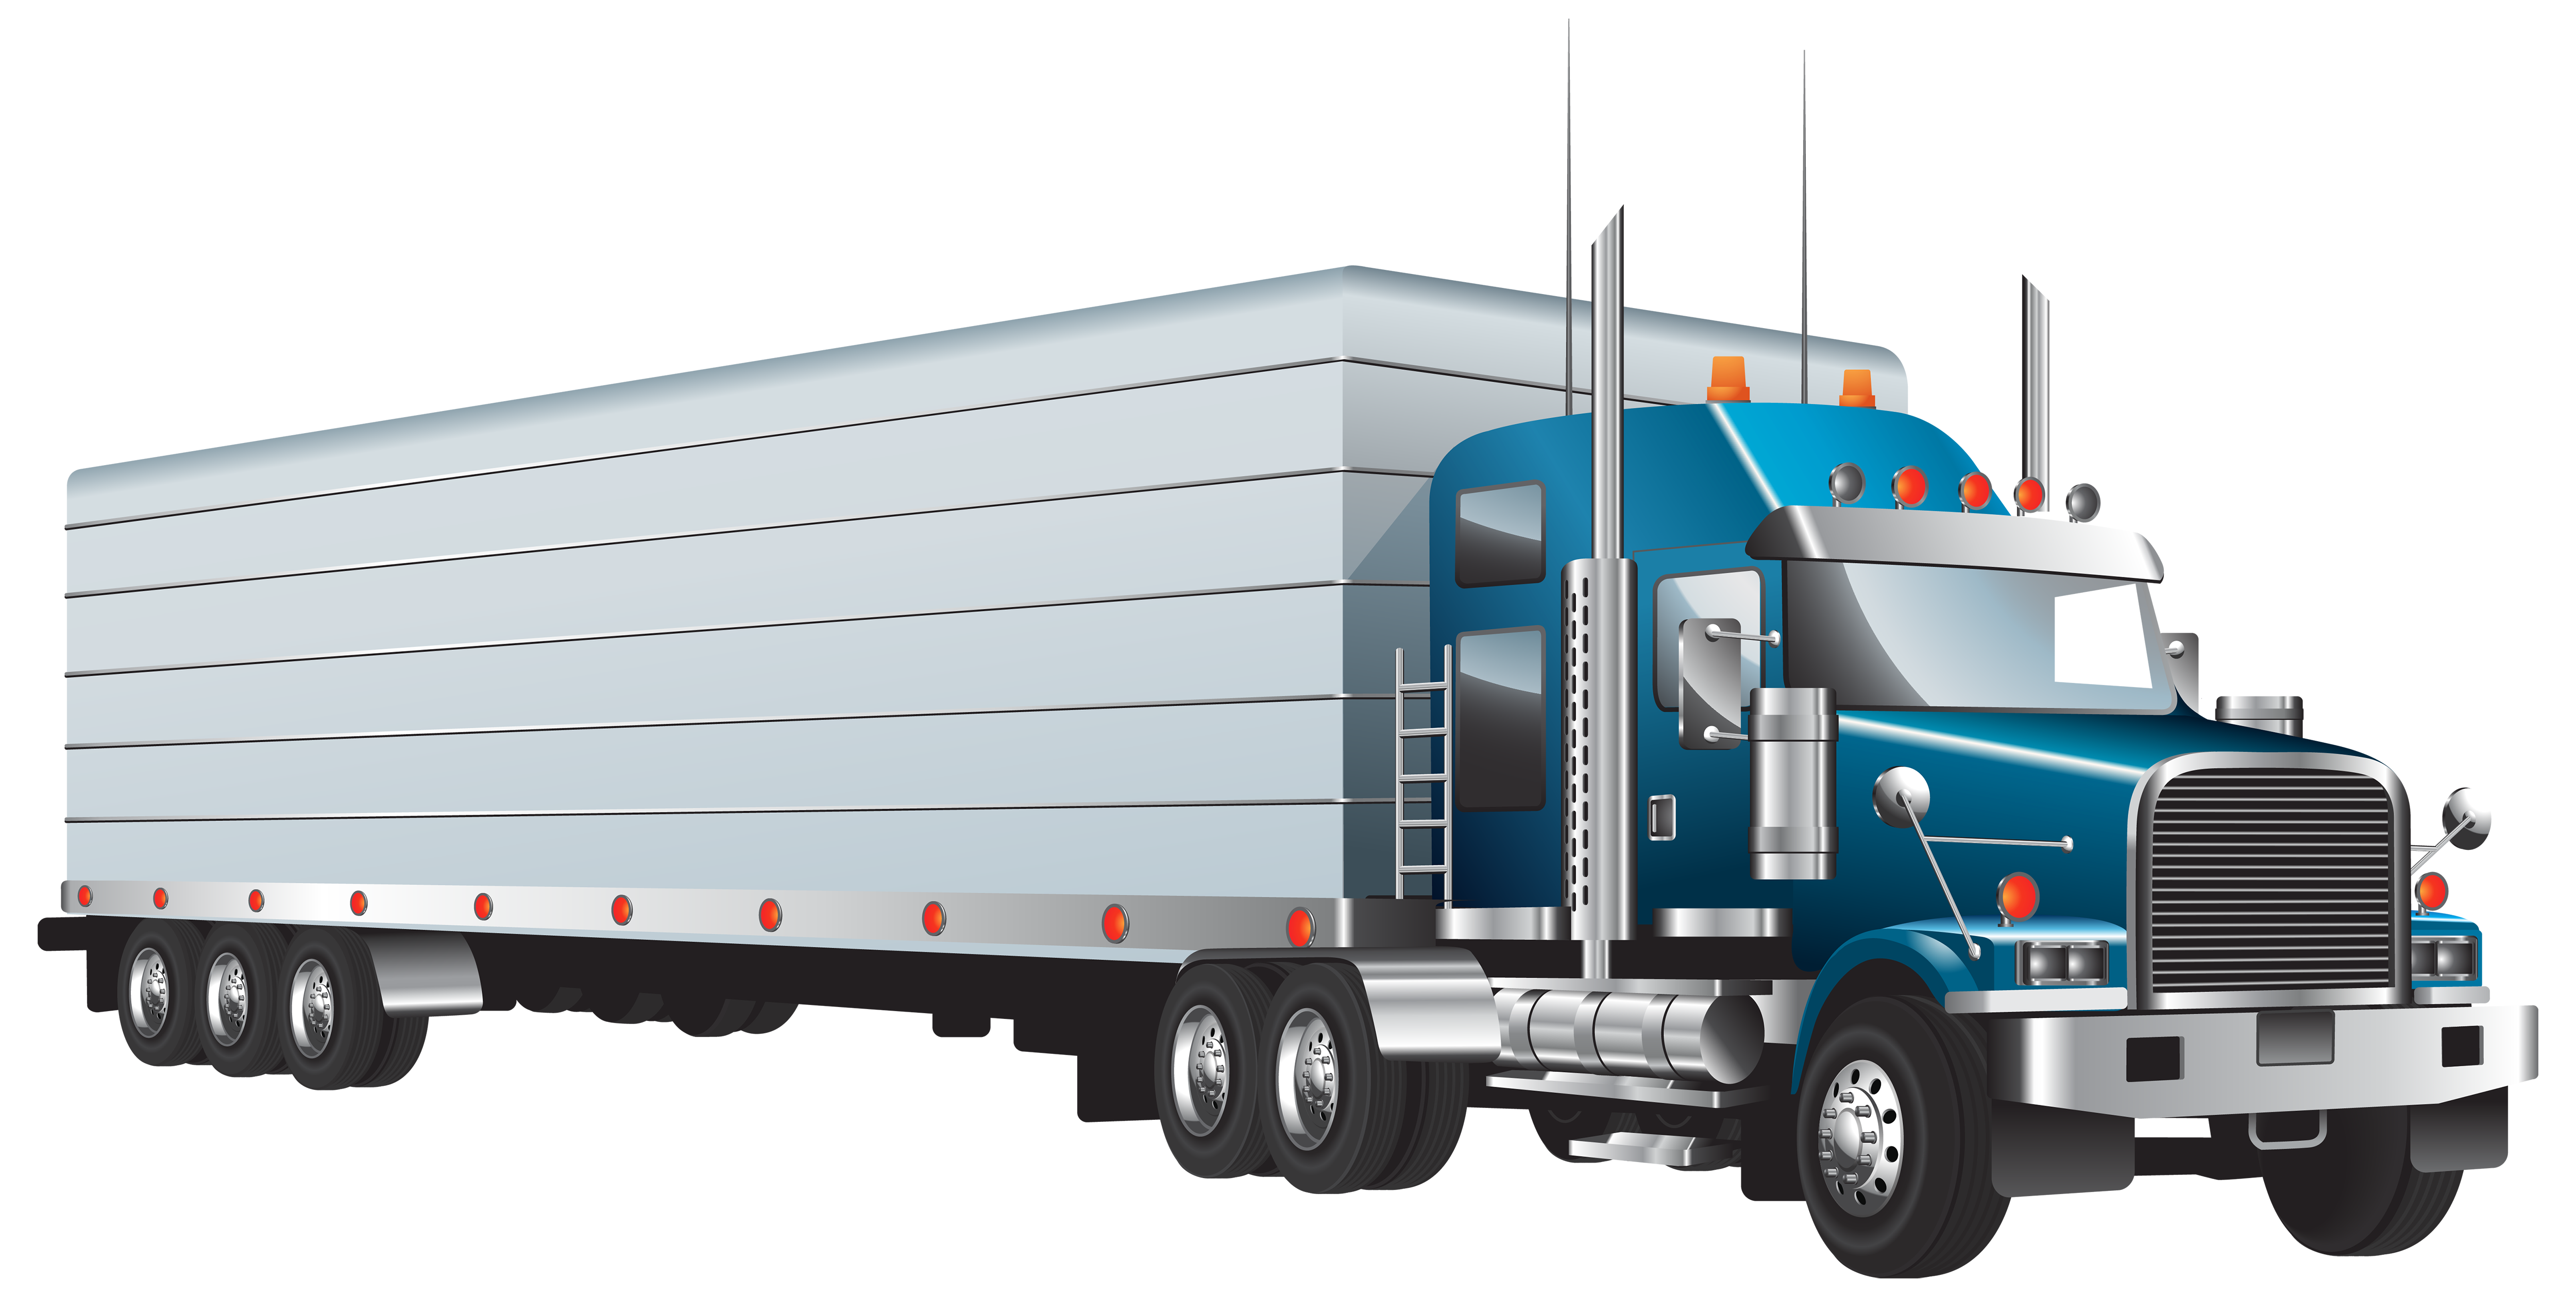 Truck Rig PNG - 85120